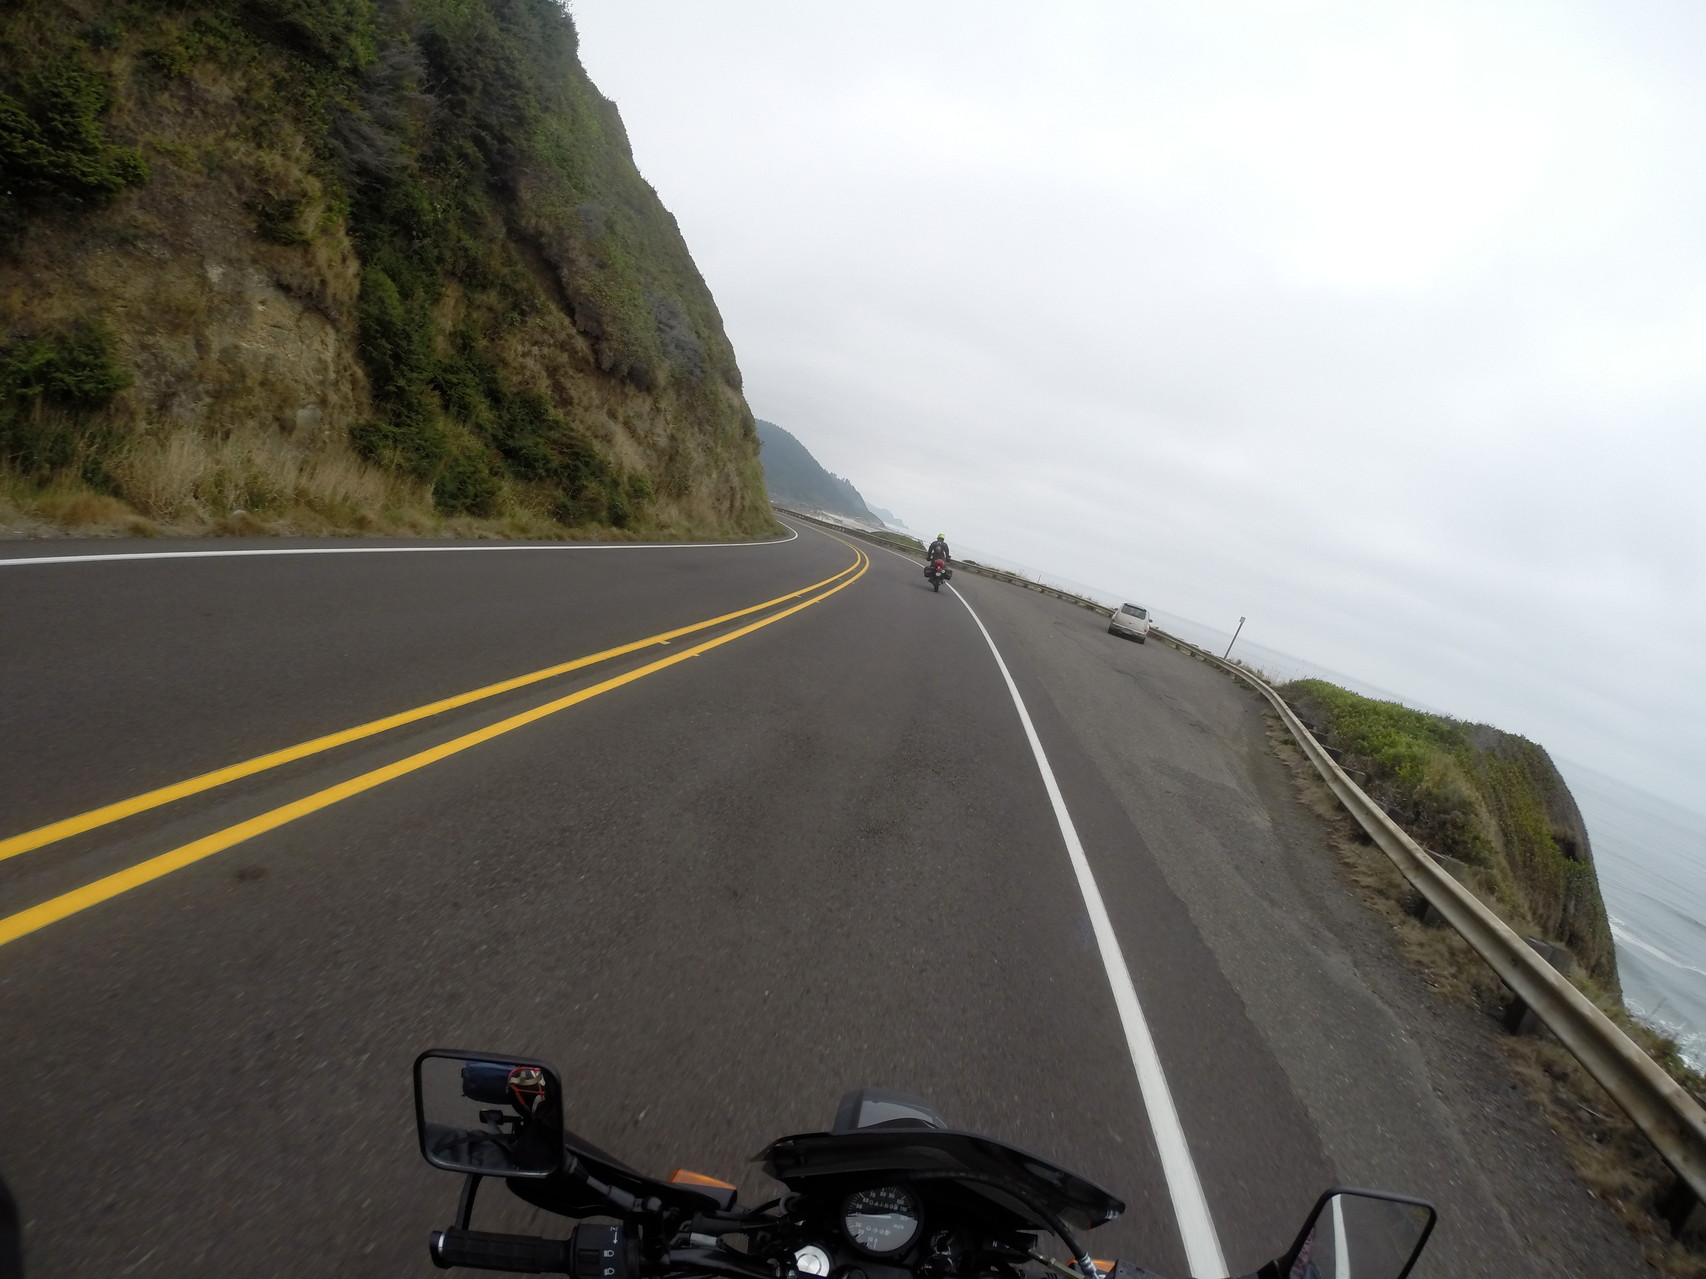 The start of many days of beautiful coastal riding- on the 101S